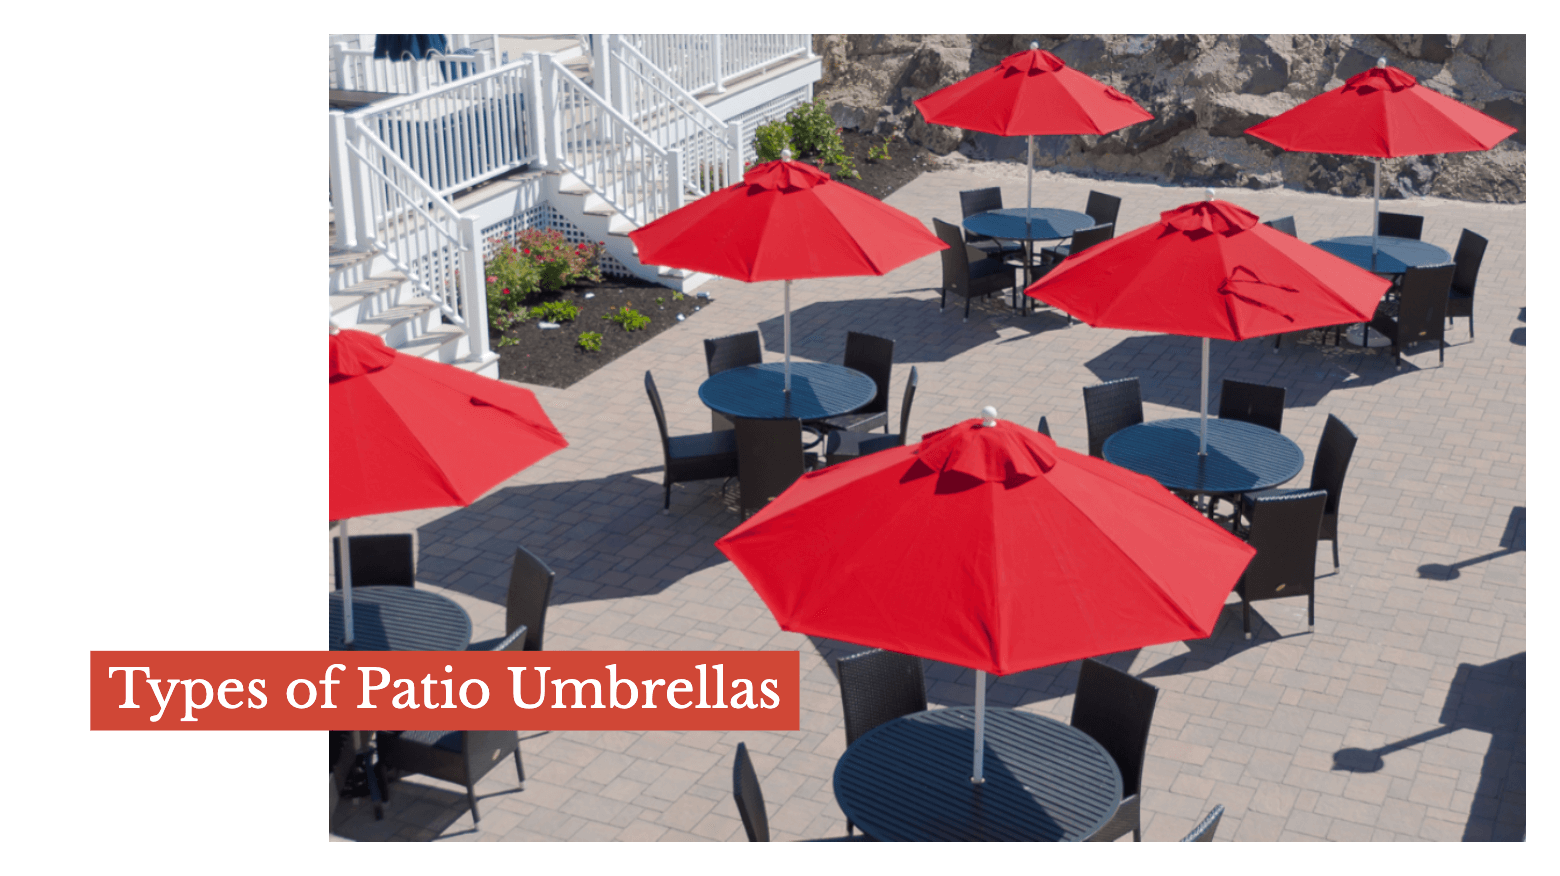 Types of Patio Umbrellas